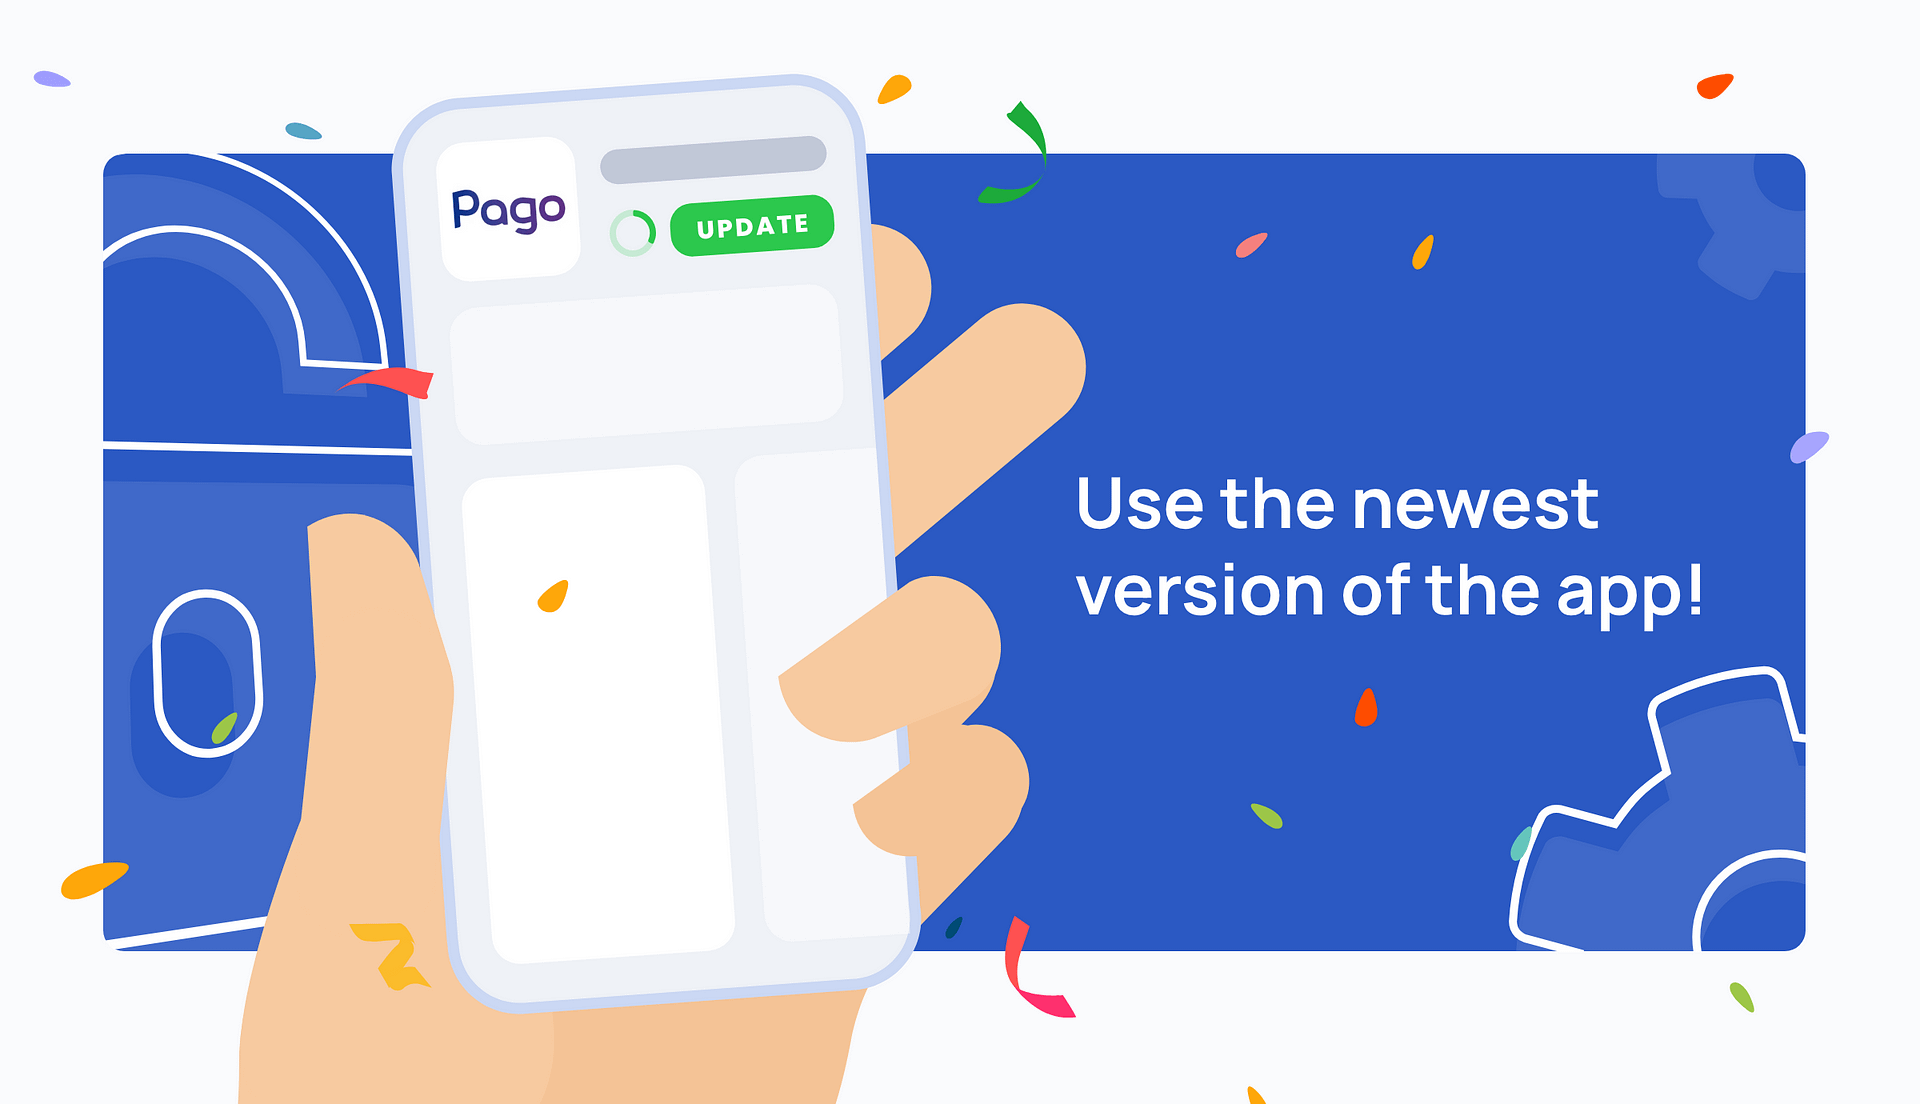 Updating the app, or how to use the latest version of Pago